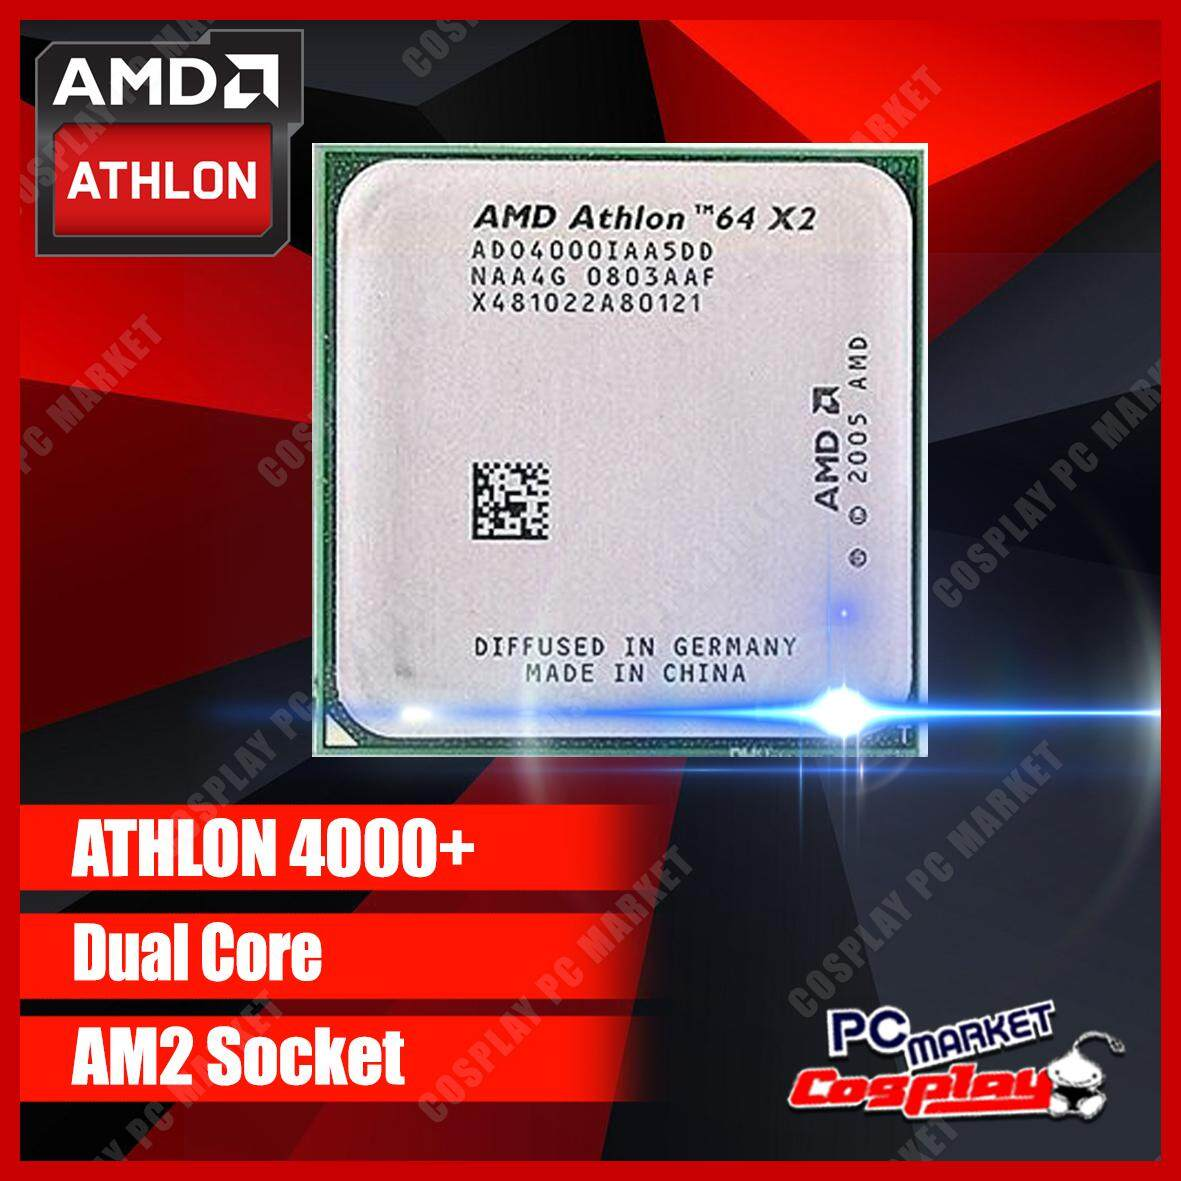 Computer Laptop Processors For The Best Price In Malaysia Processor Lga1150 G3240 310ghz Dual Core Amd Athlon 64x2 4000 21ghz Socket Am2 Refurbished